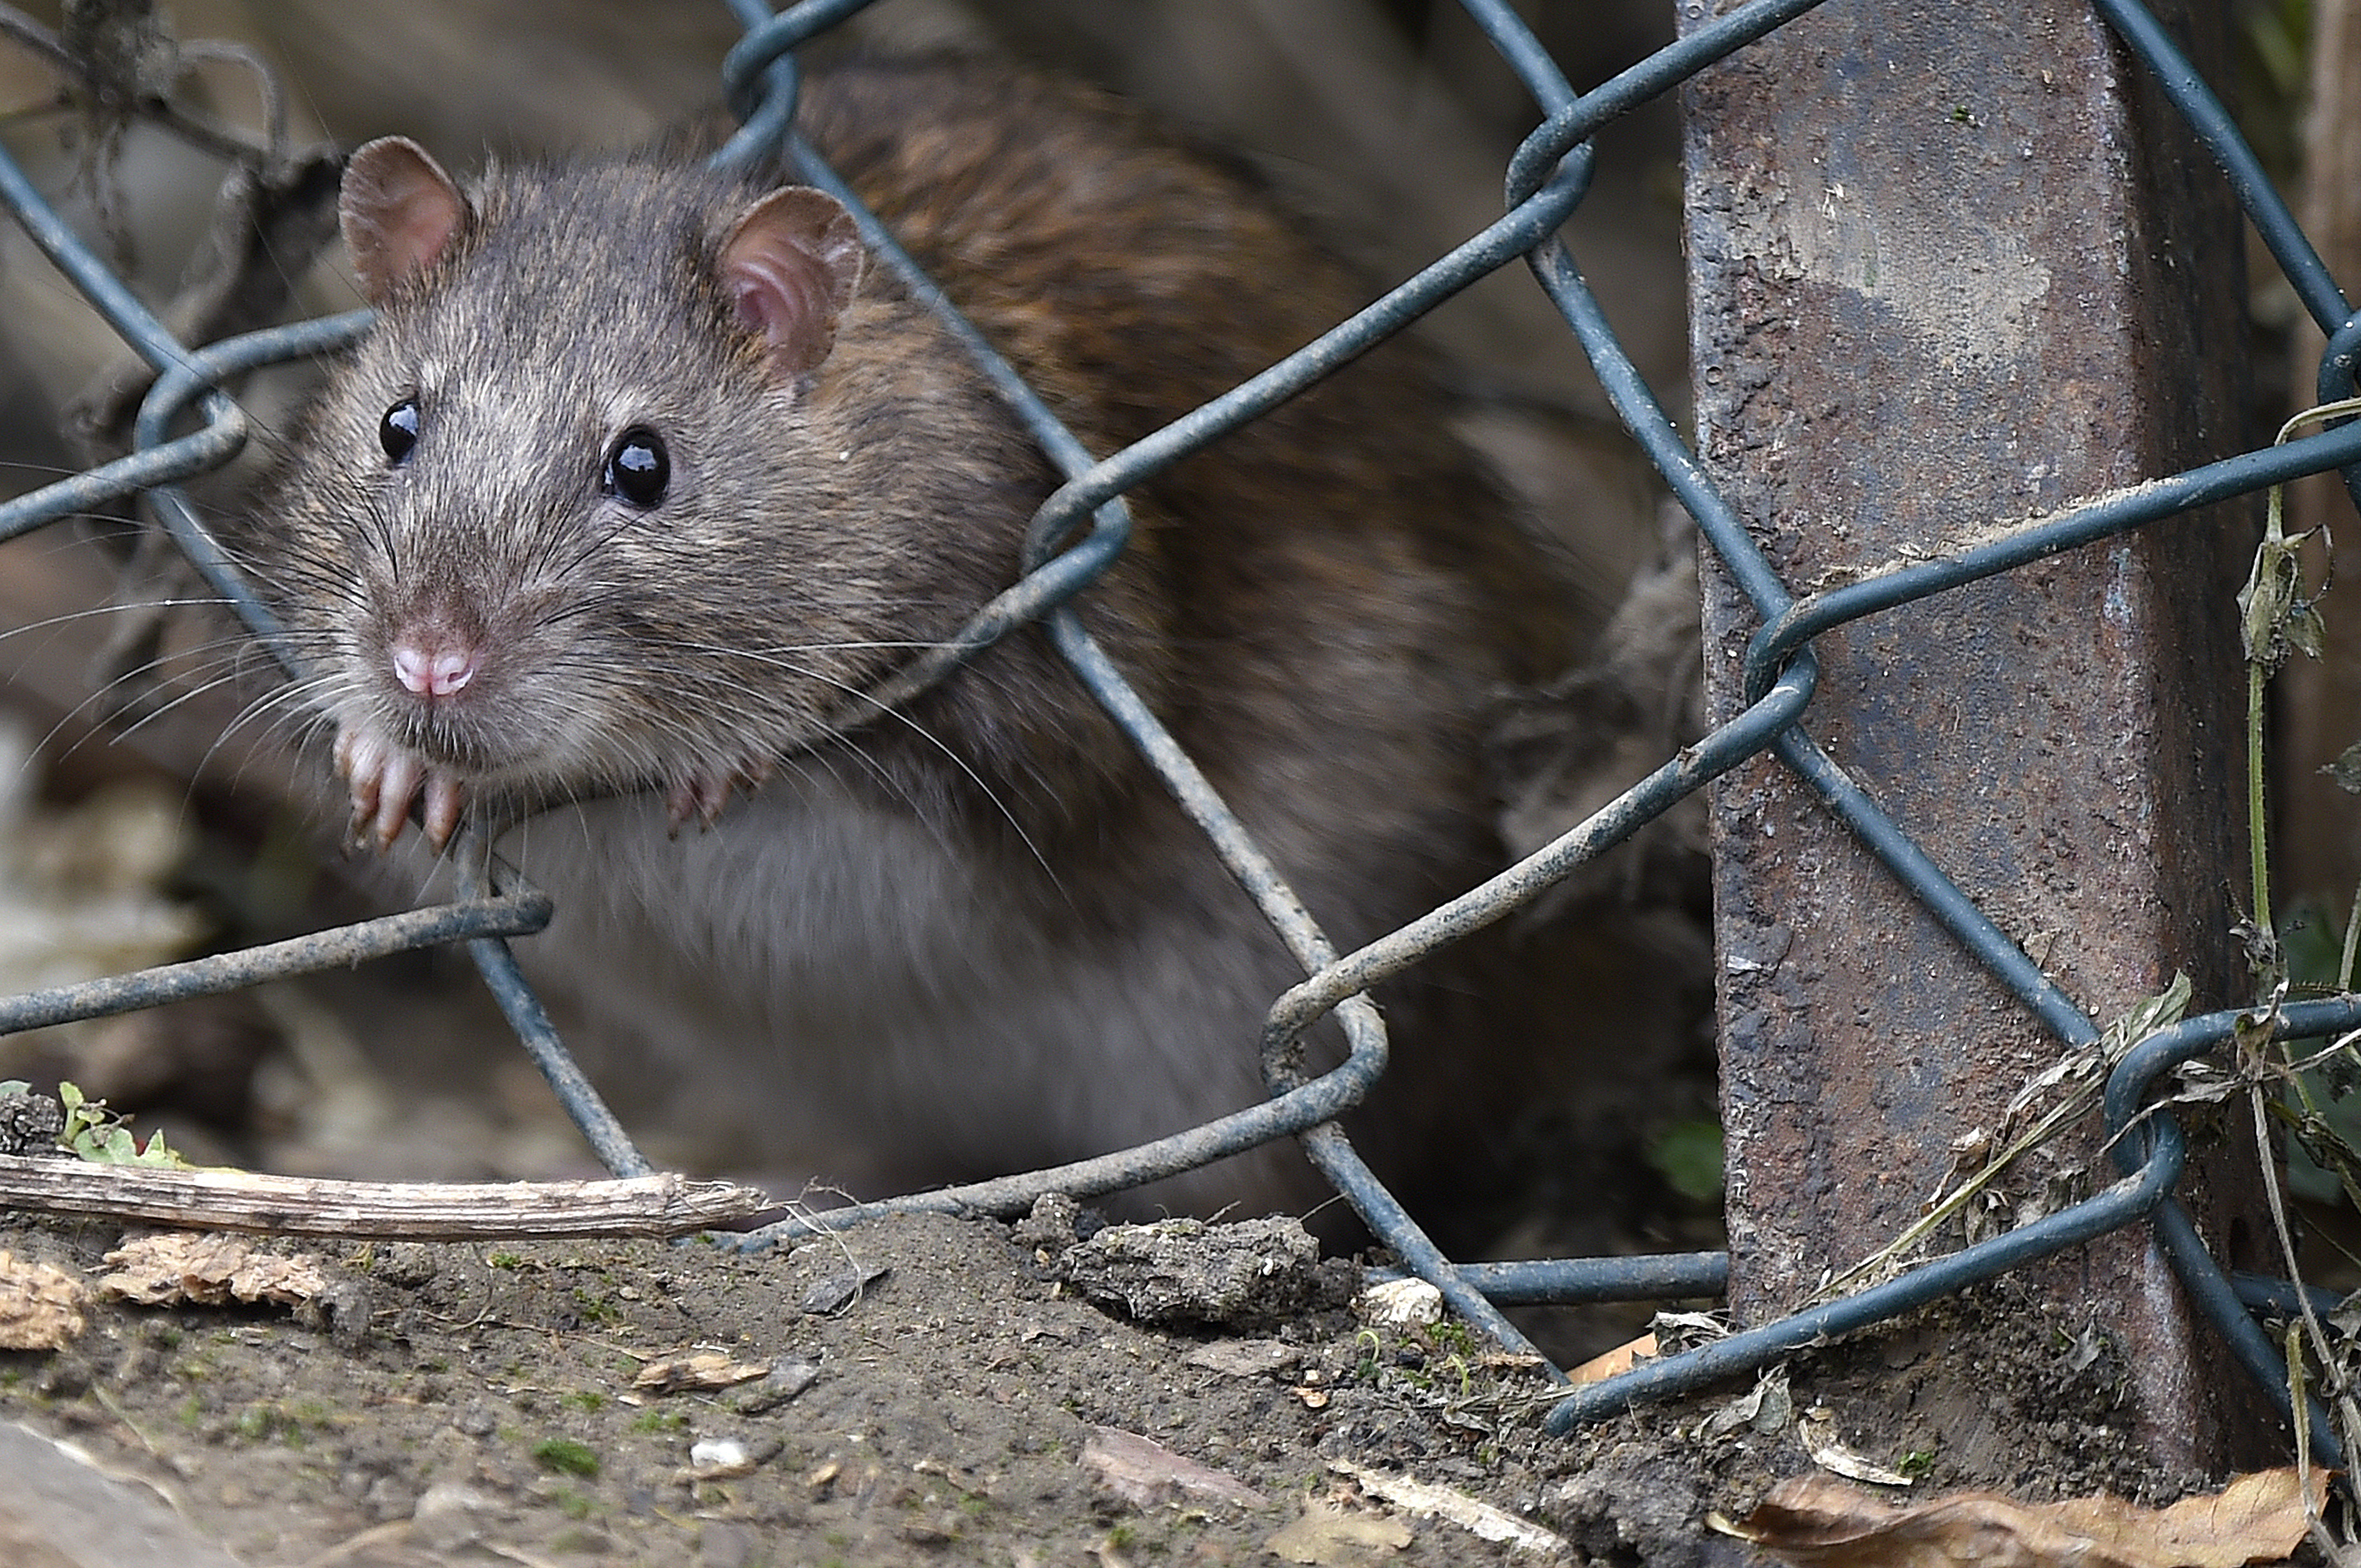 Rat Infestation At Motorway Services In United Kingdom